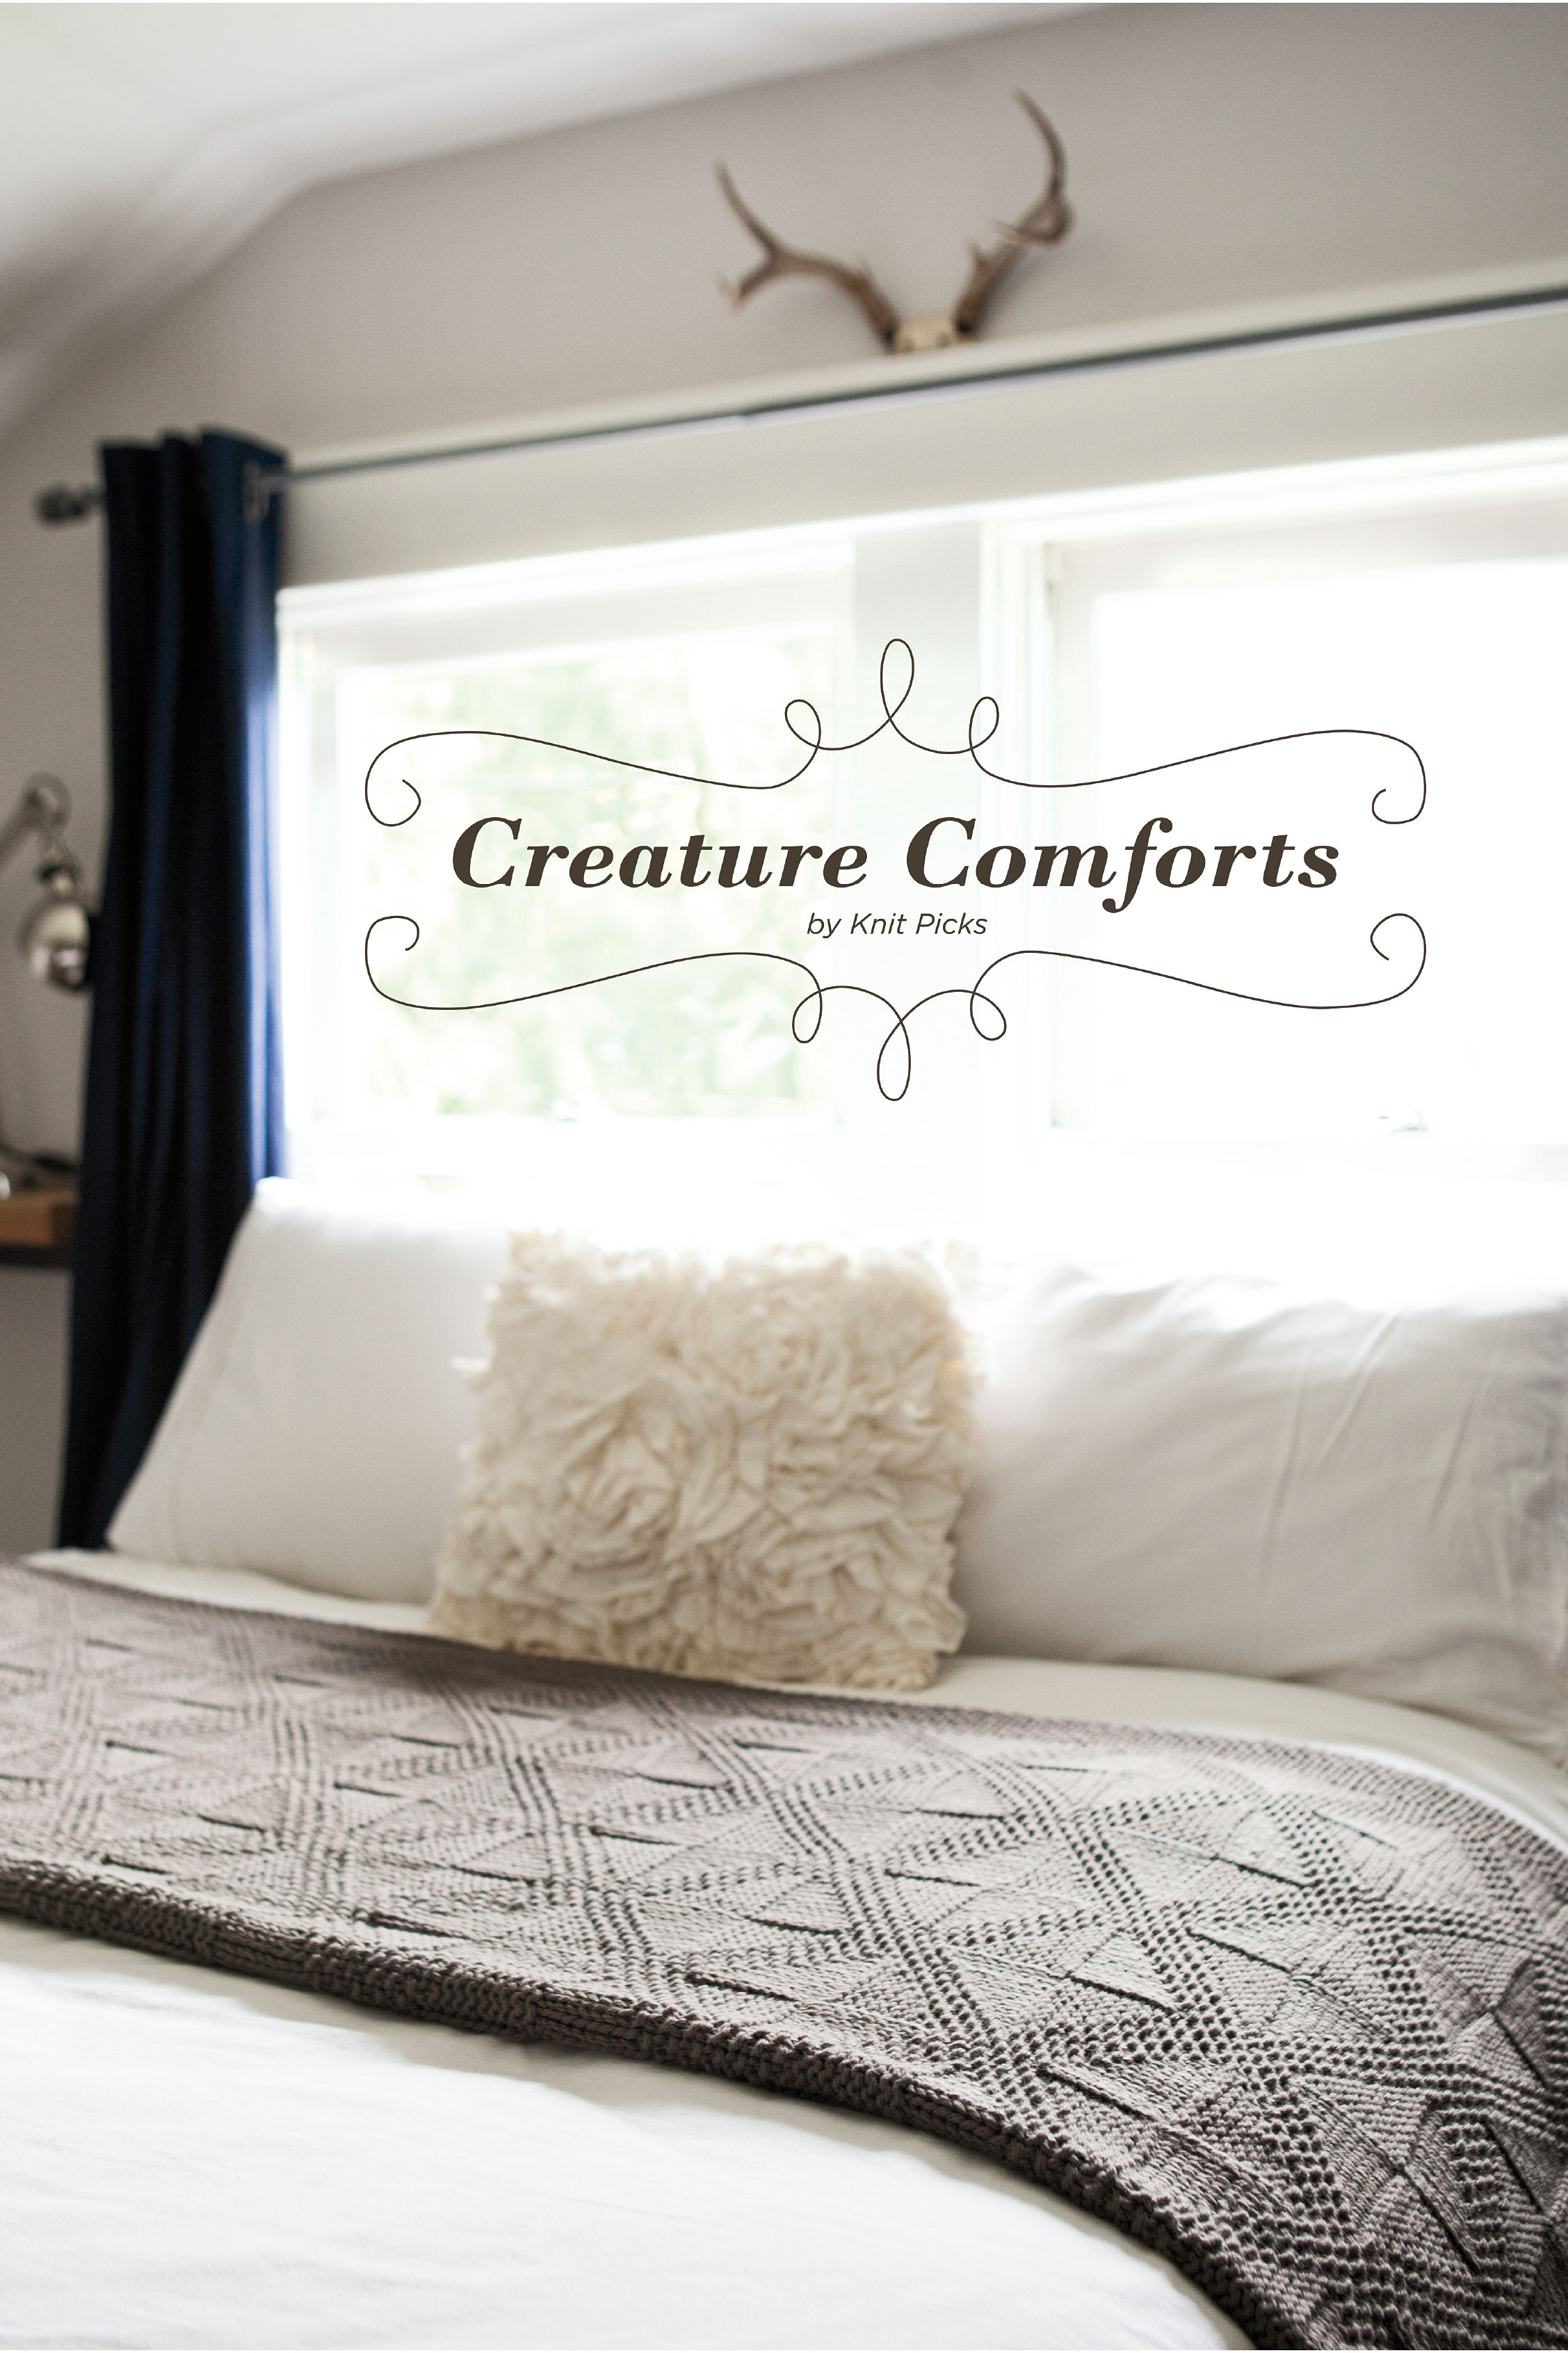 Creature Comforts: Handmade Knits for the Home